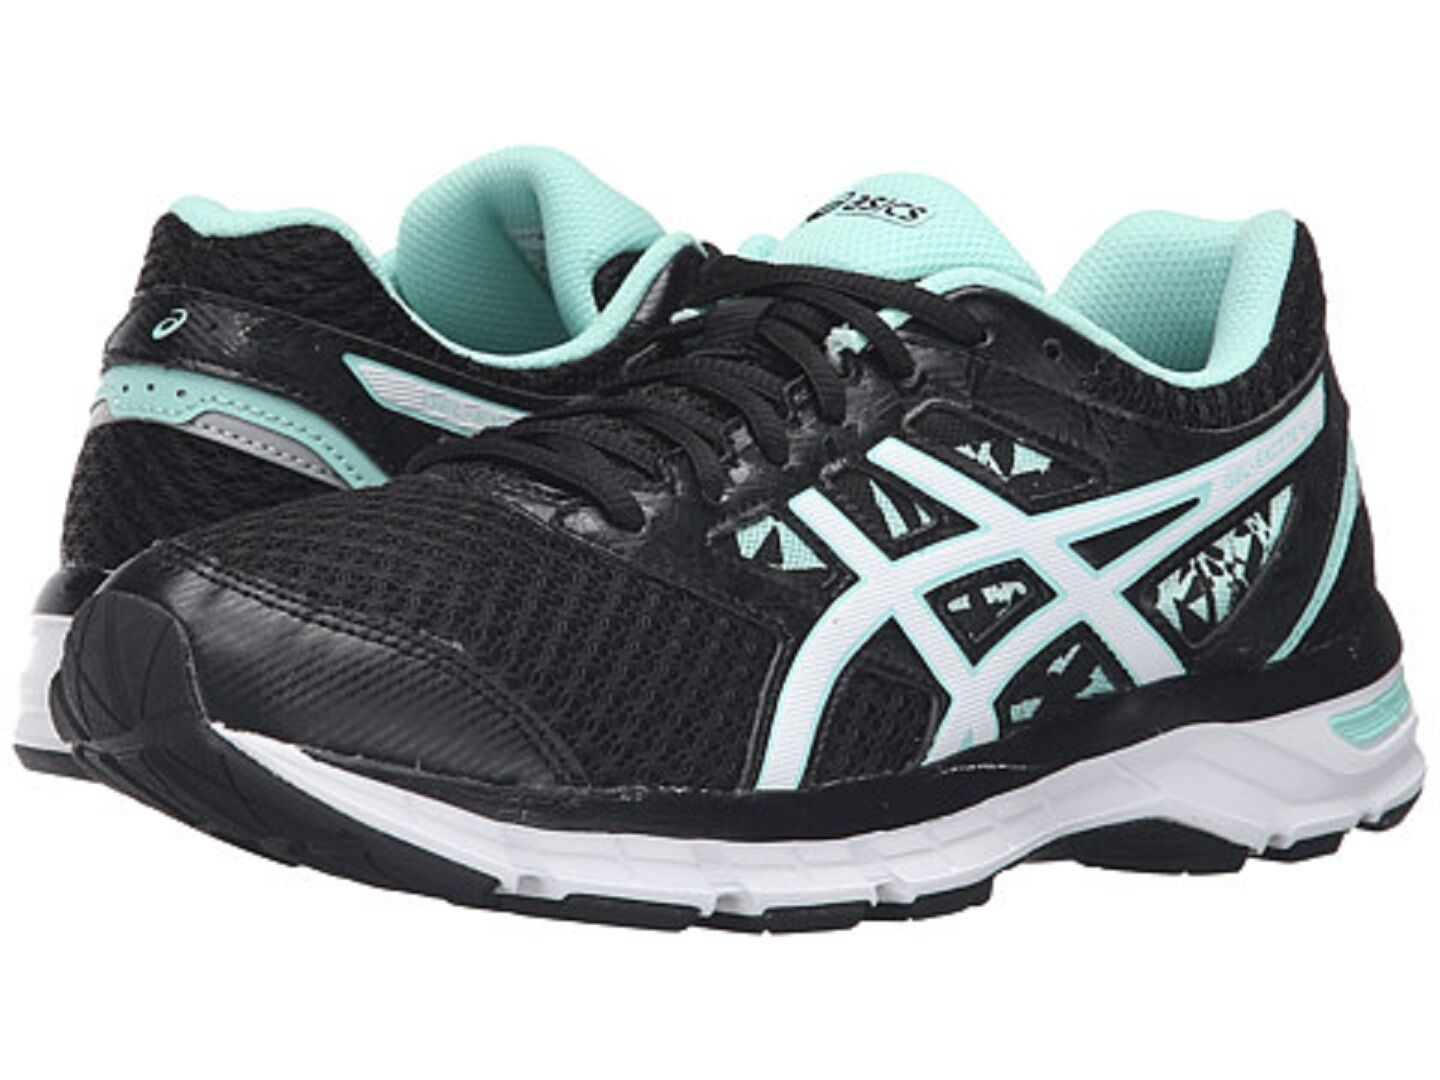 ASICS T6E8N.9001 GEL-EXCITE 4 Wmn's (M) Black White Mint Mesh Running shoes